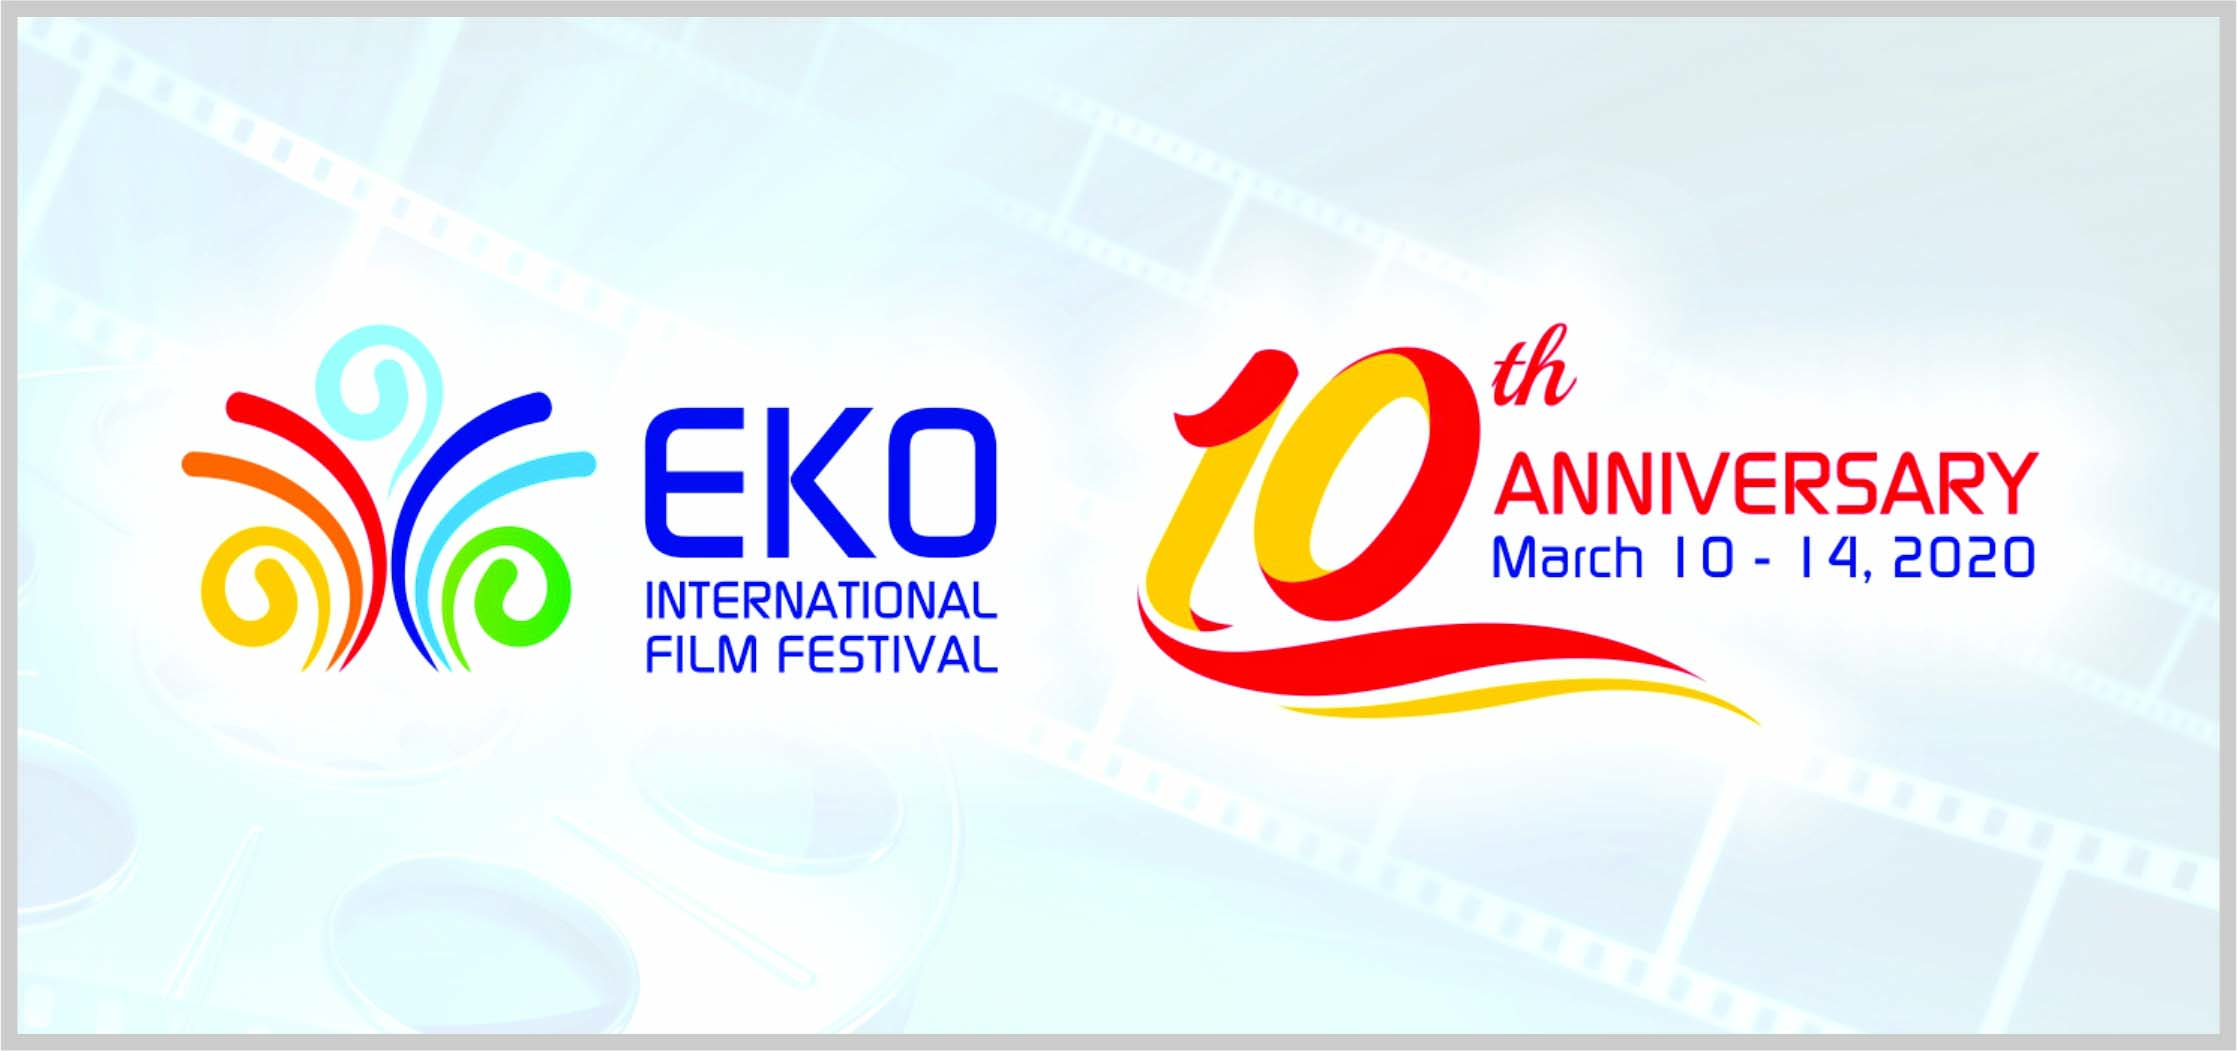 EKOIFF 2020  - 10TH ANNIVERSARY AT SILVERBIRD CINEMA & TERRA KULTURE